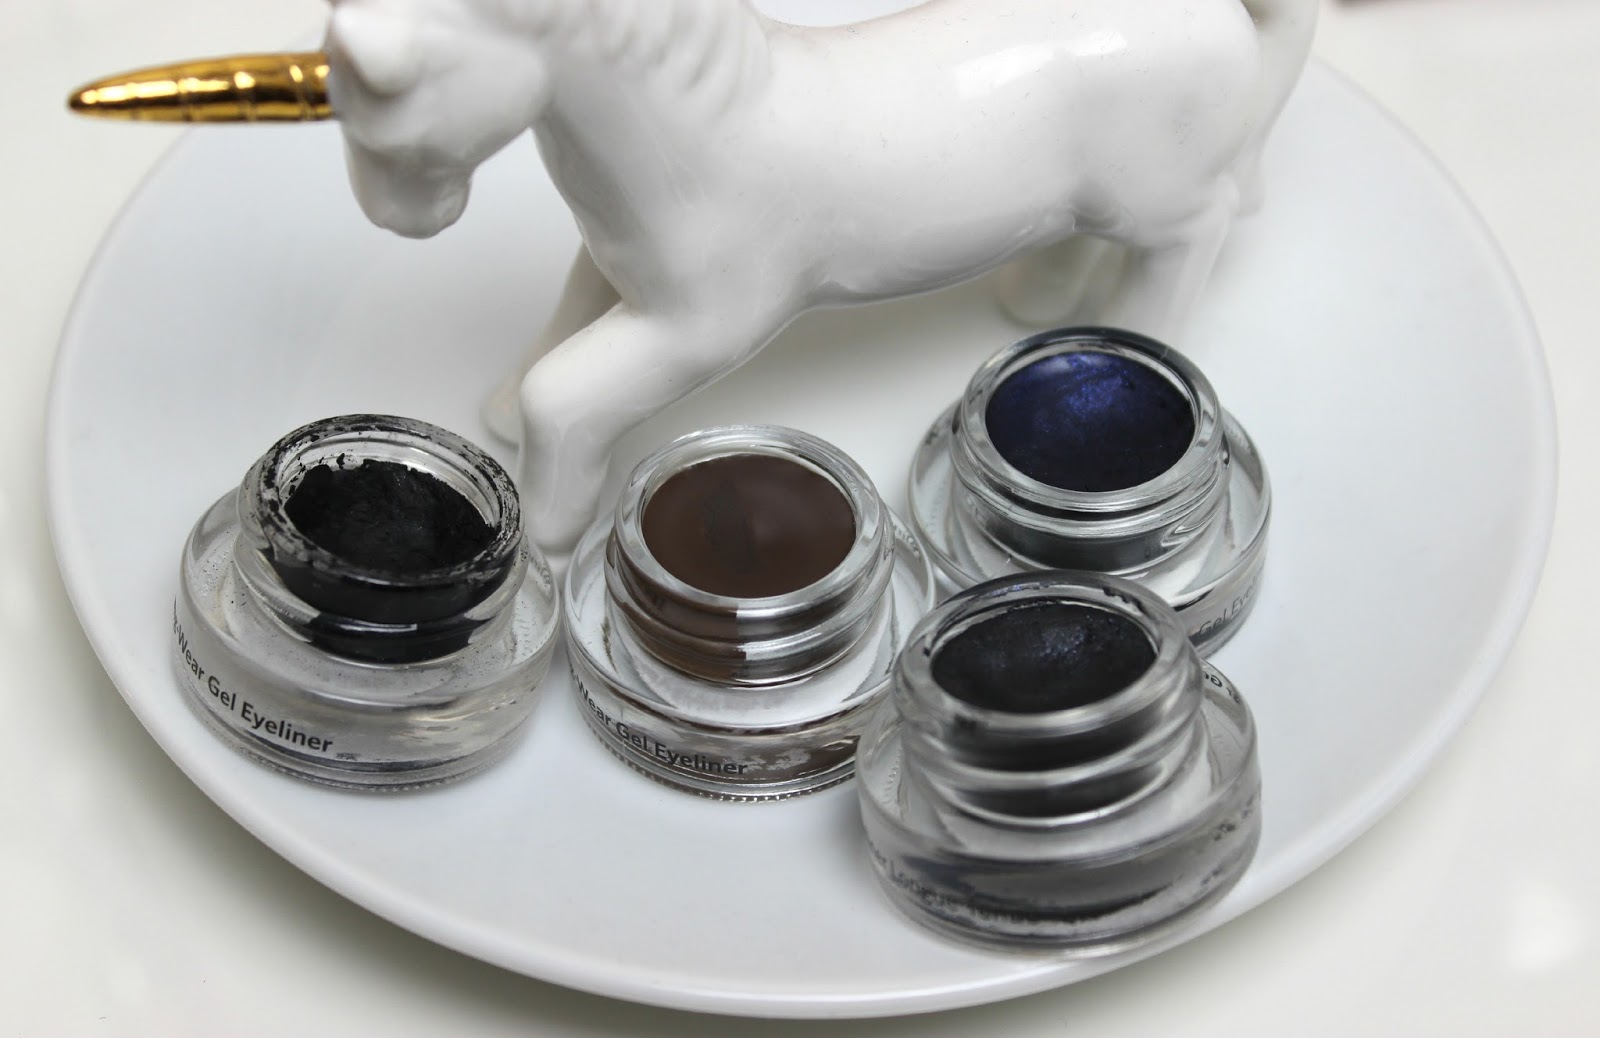 A picture of Bobbi Brown Long-Wear Gel Liner